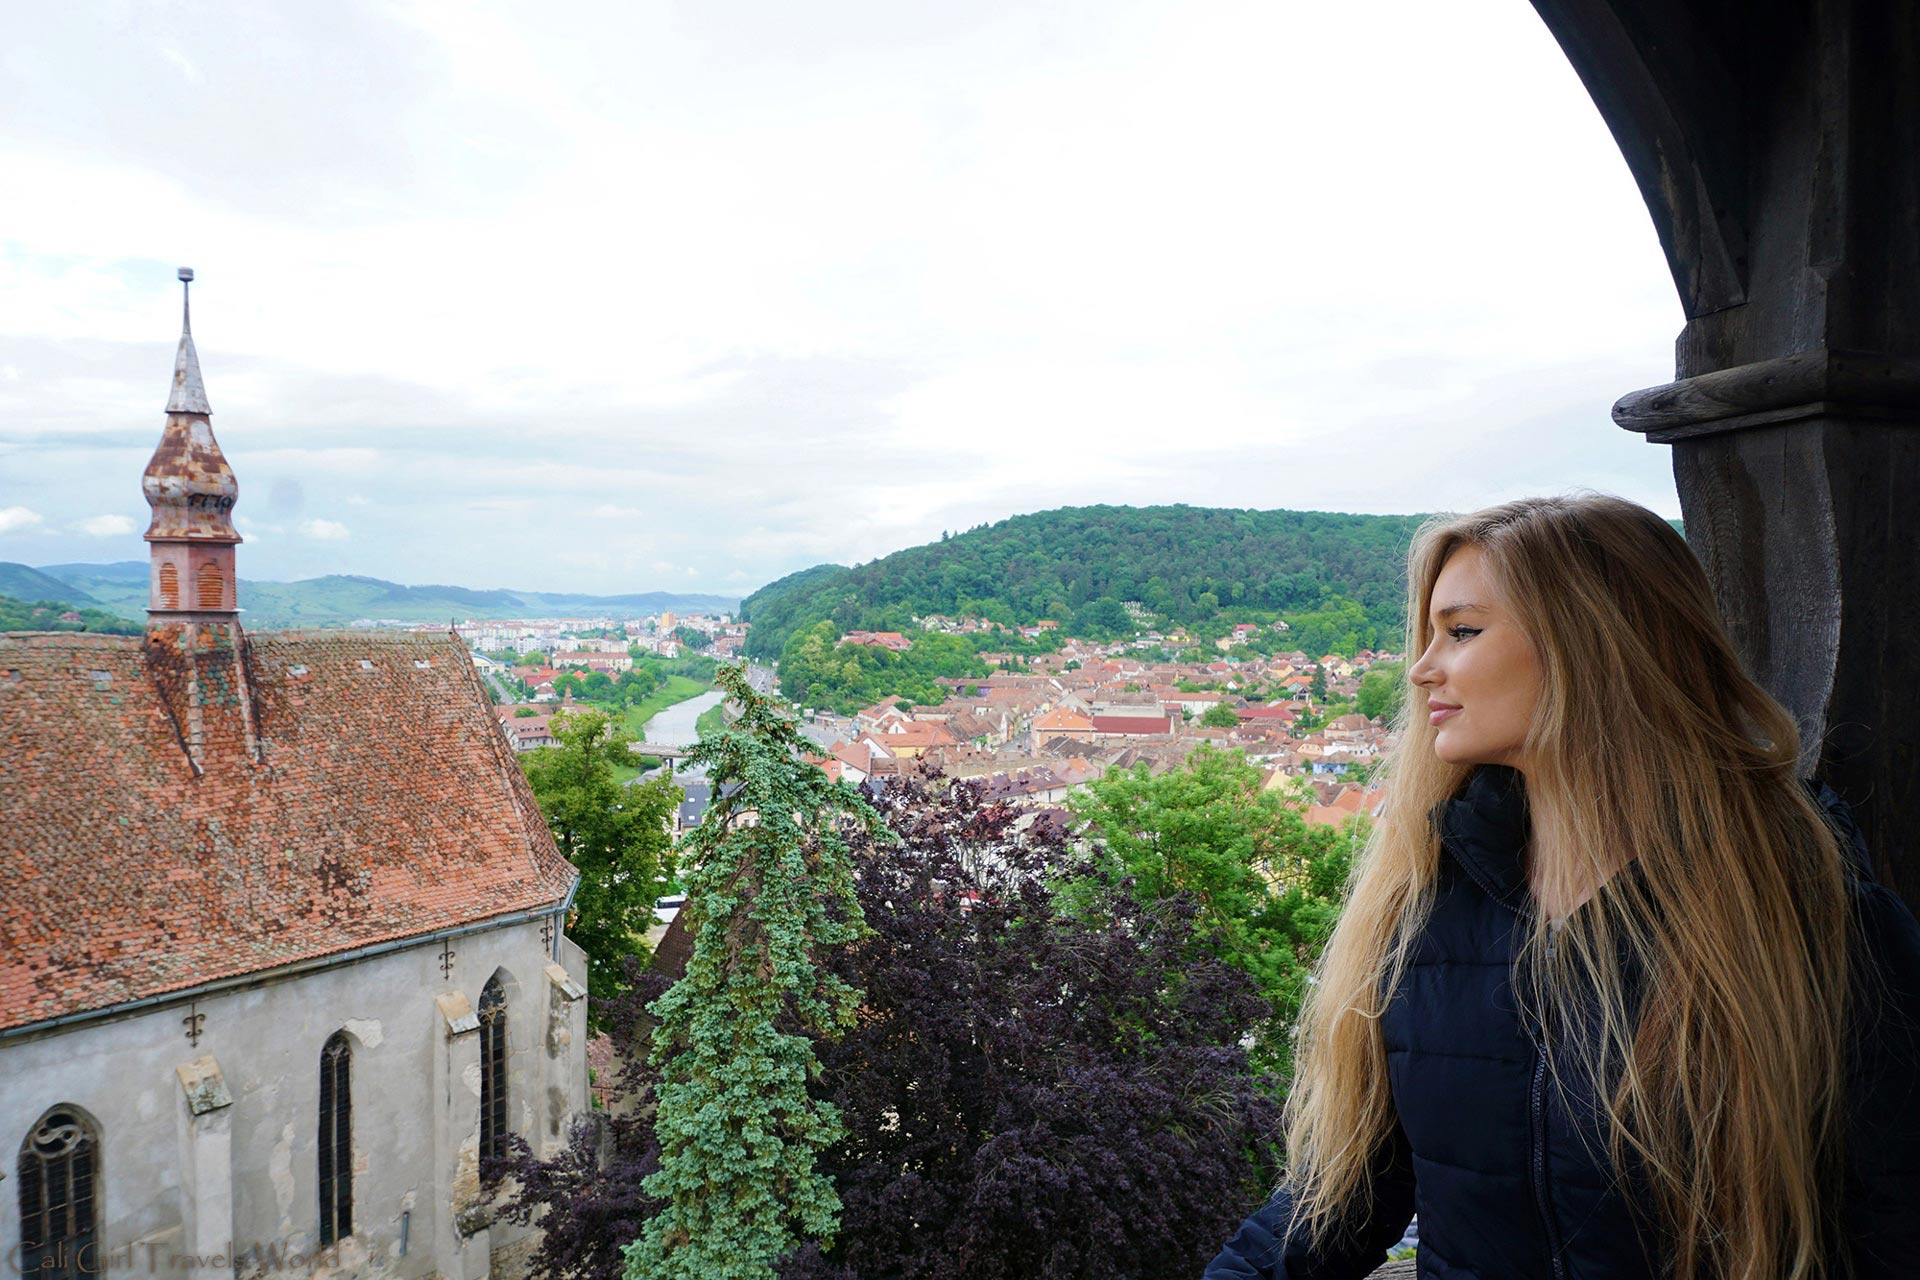 Female Travel Blogger looking out over the city with the council tower and churches of Sighisoara below.